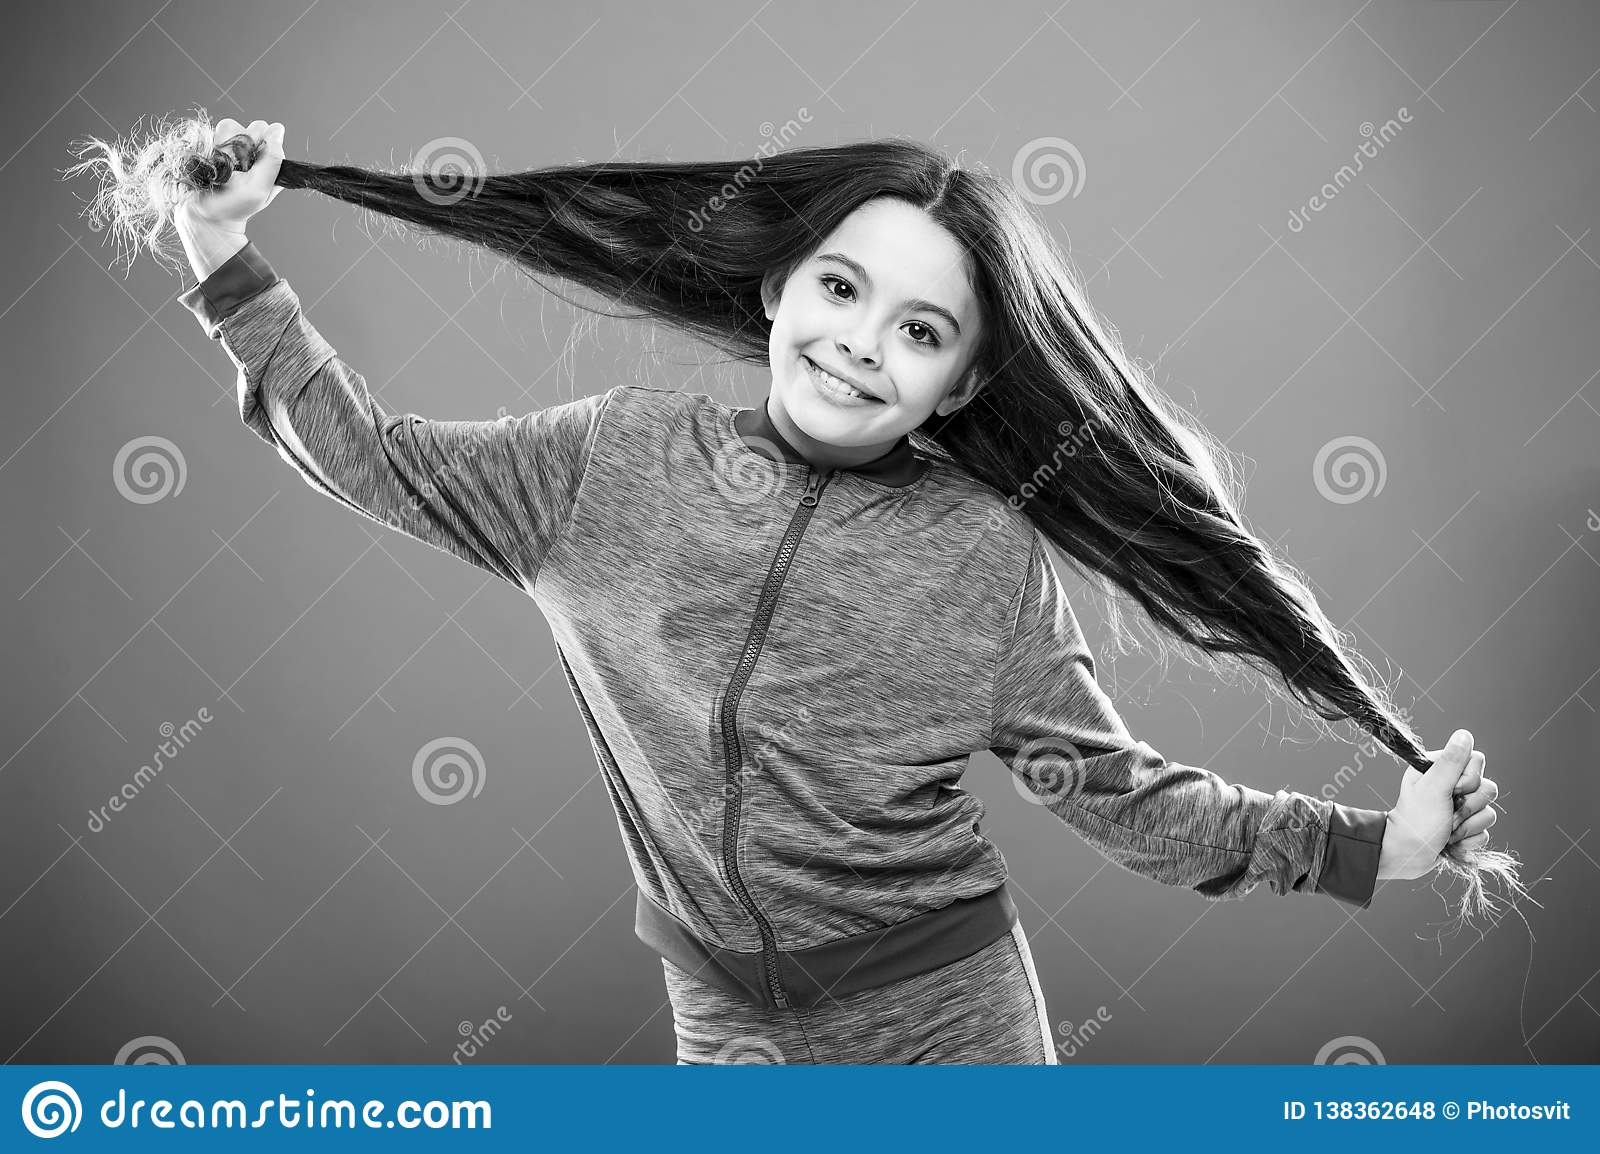 Strong hair concept. Kid girl long healthy shiny hair. Main thing is keeping it clean. Use gentle shampoo and warm water